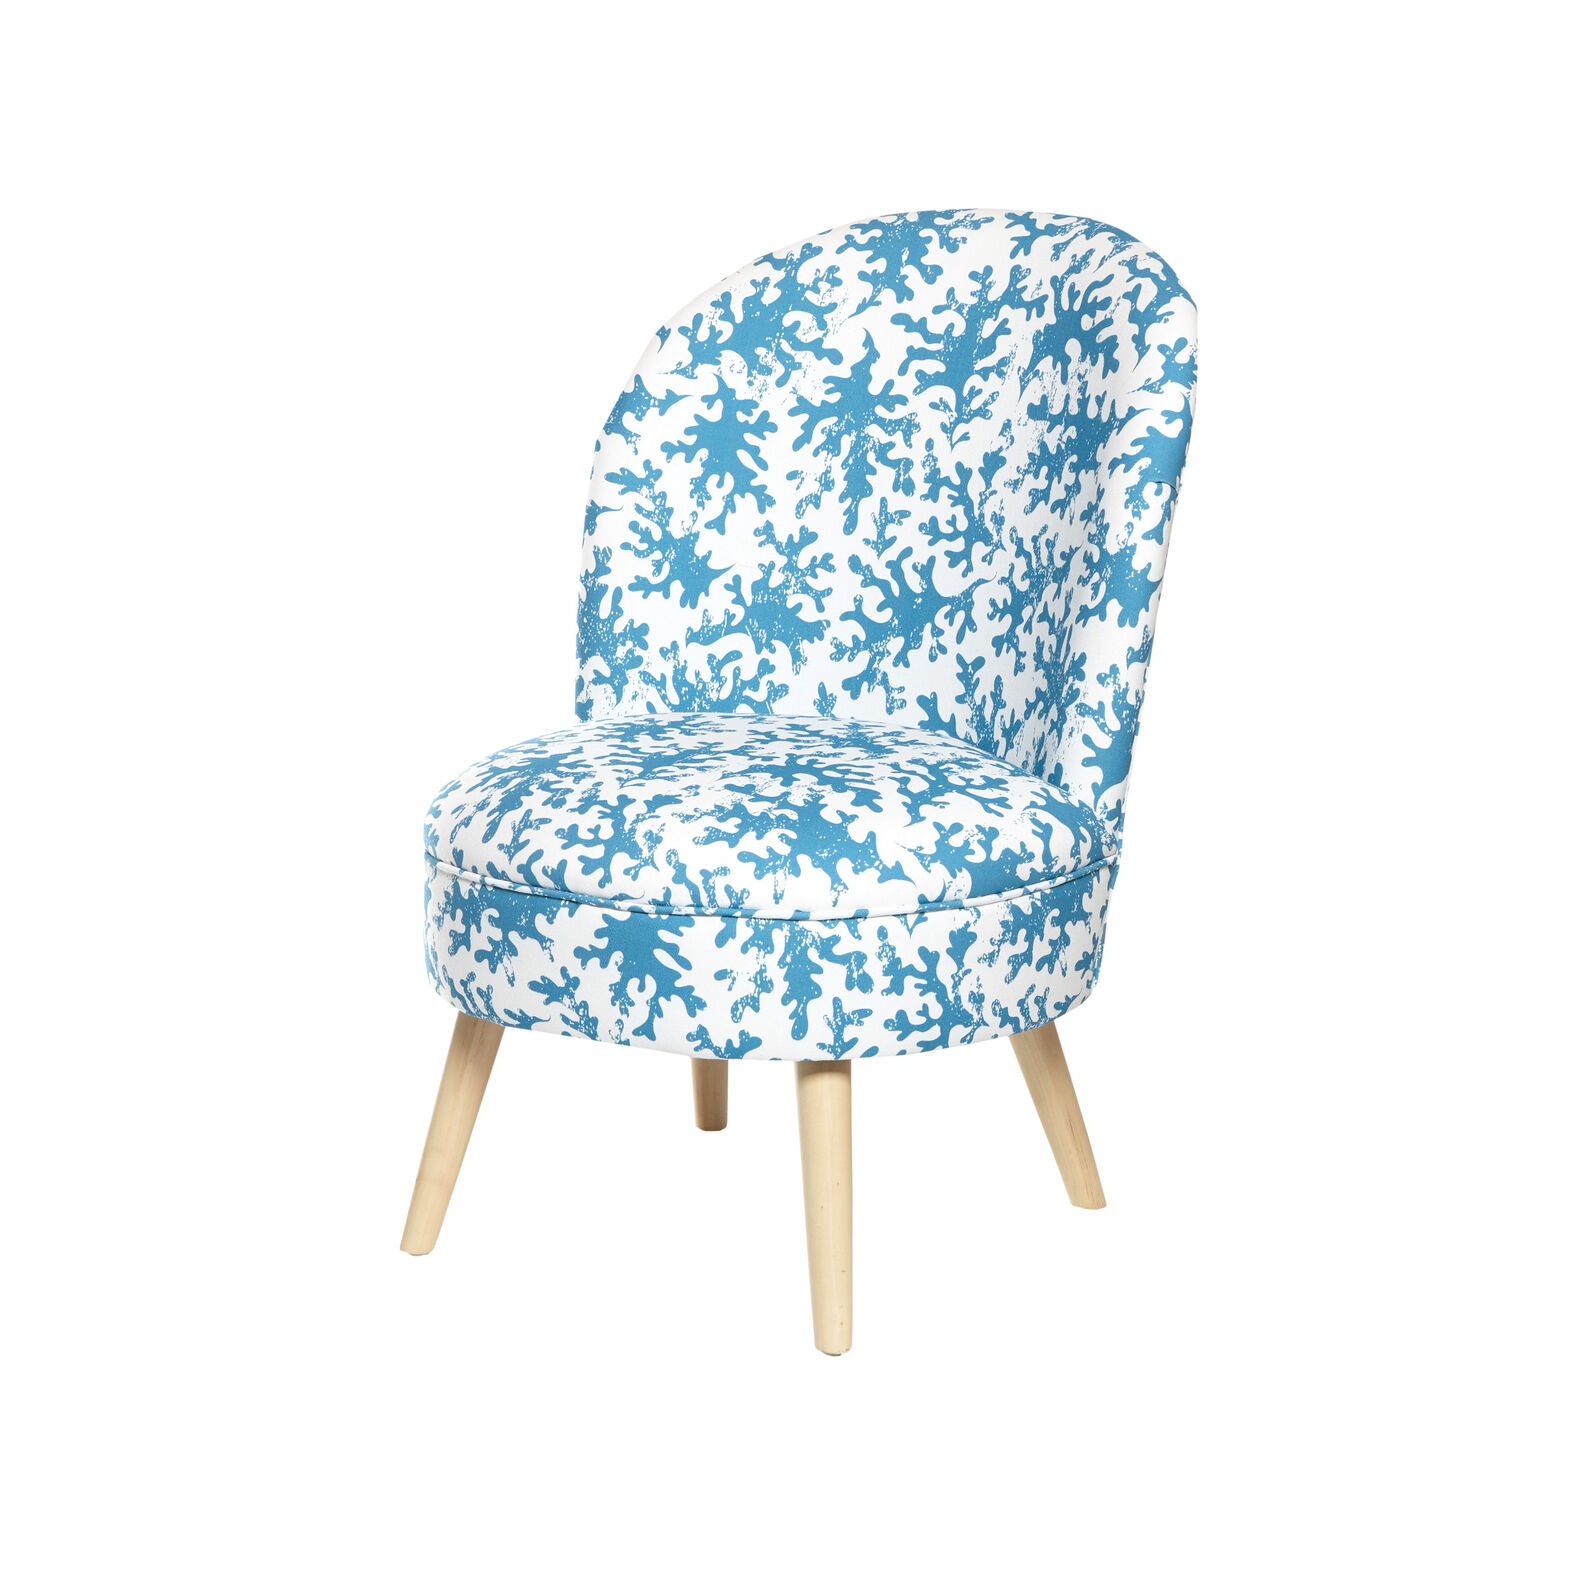 Blucoral chair in cotton and wood